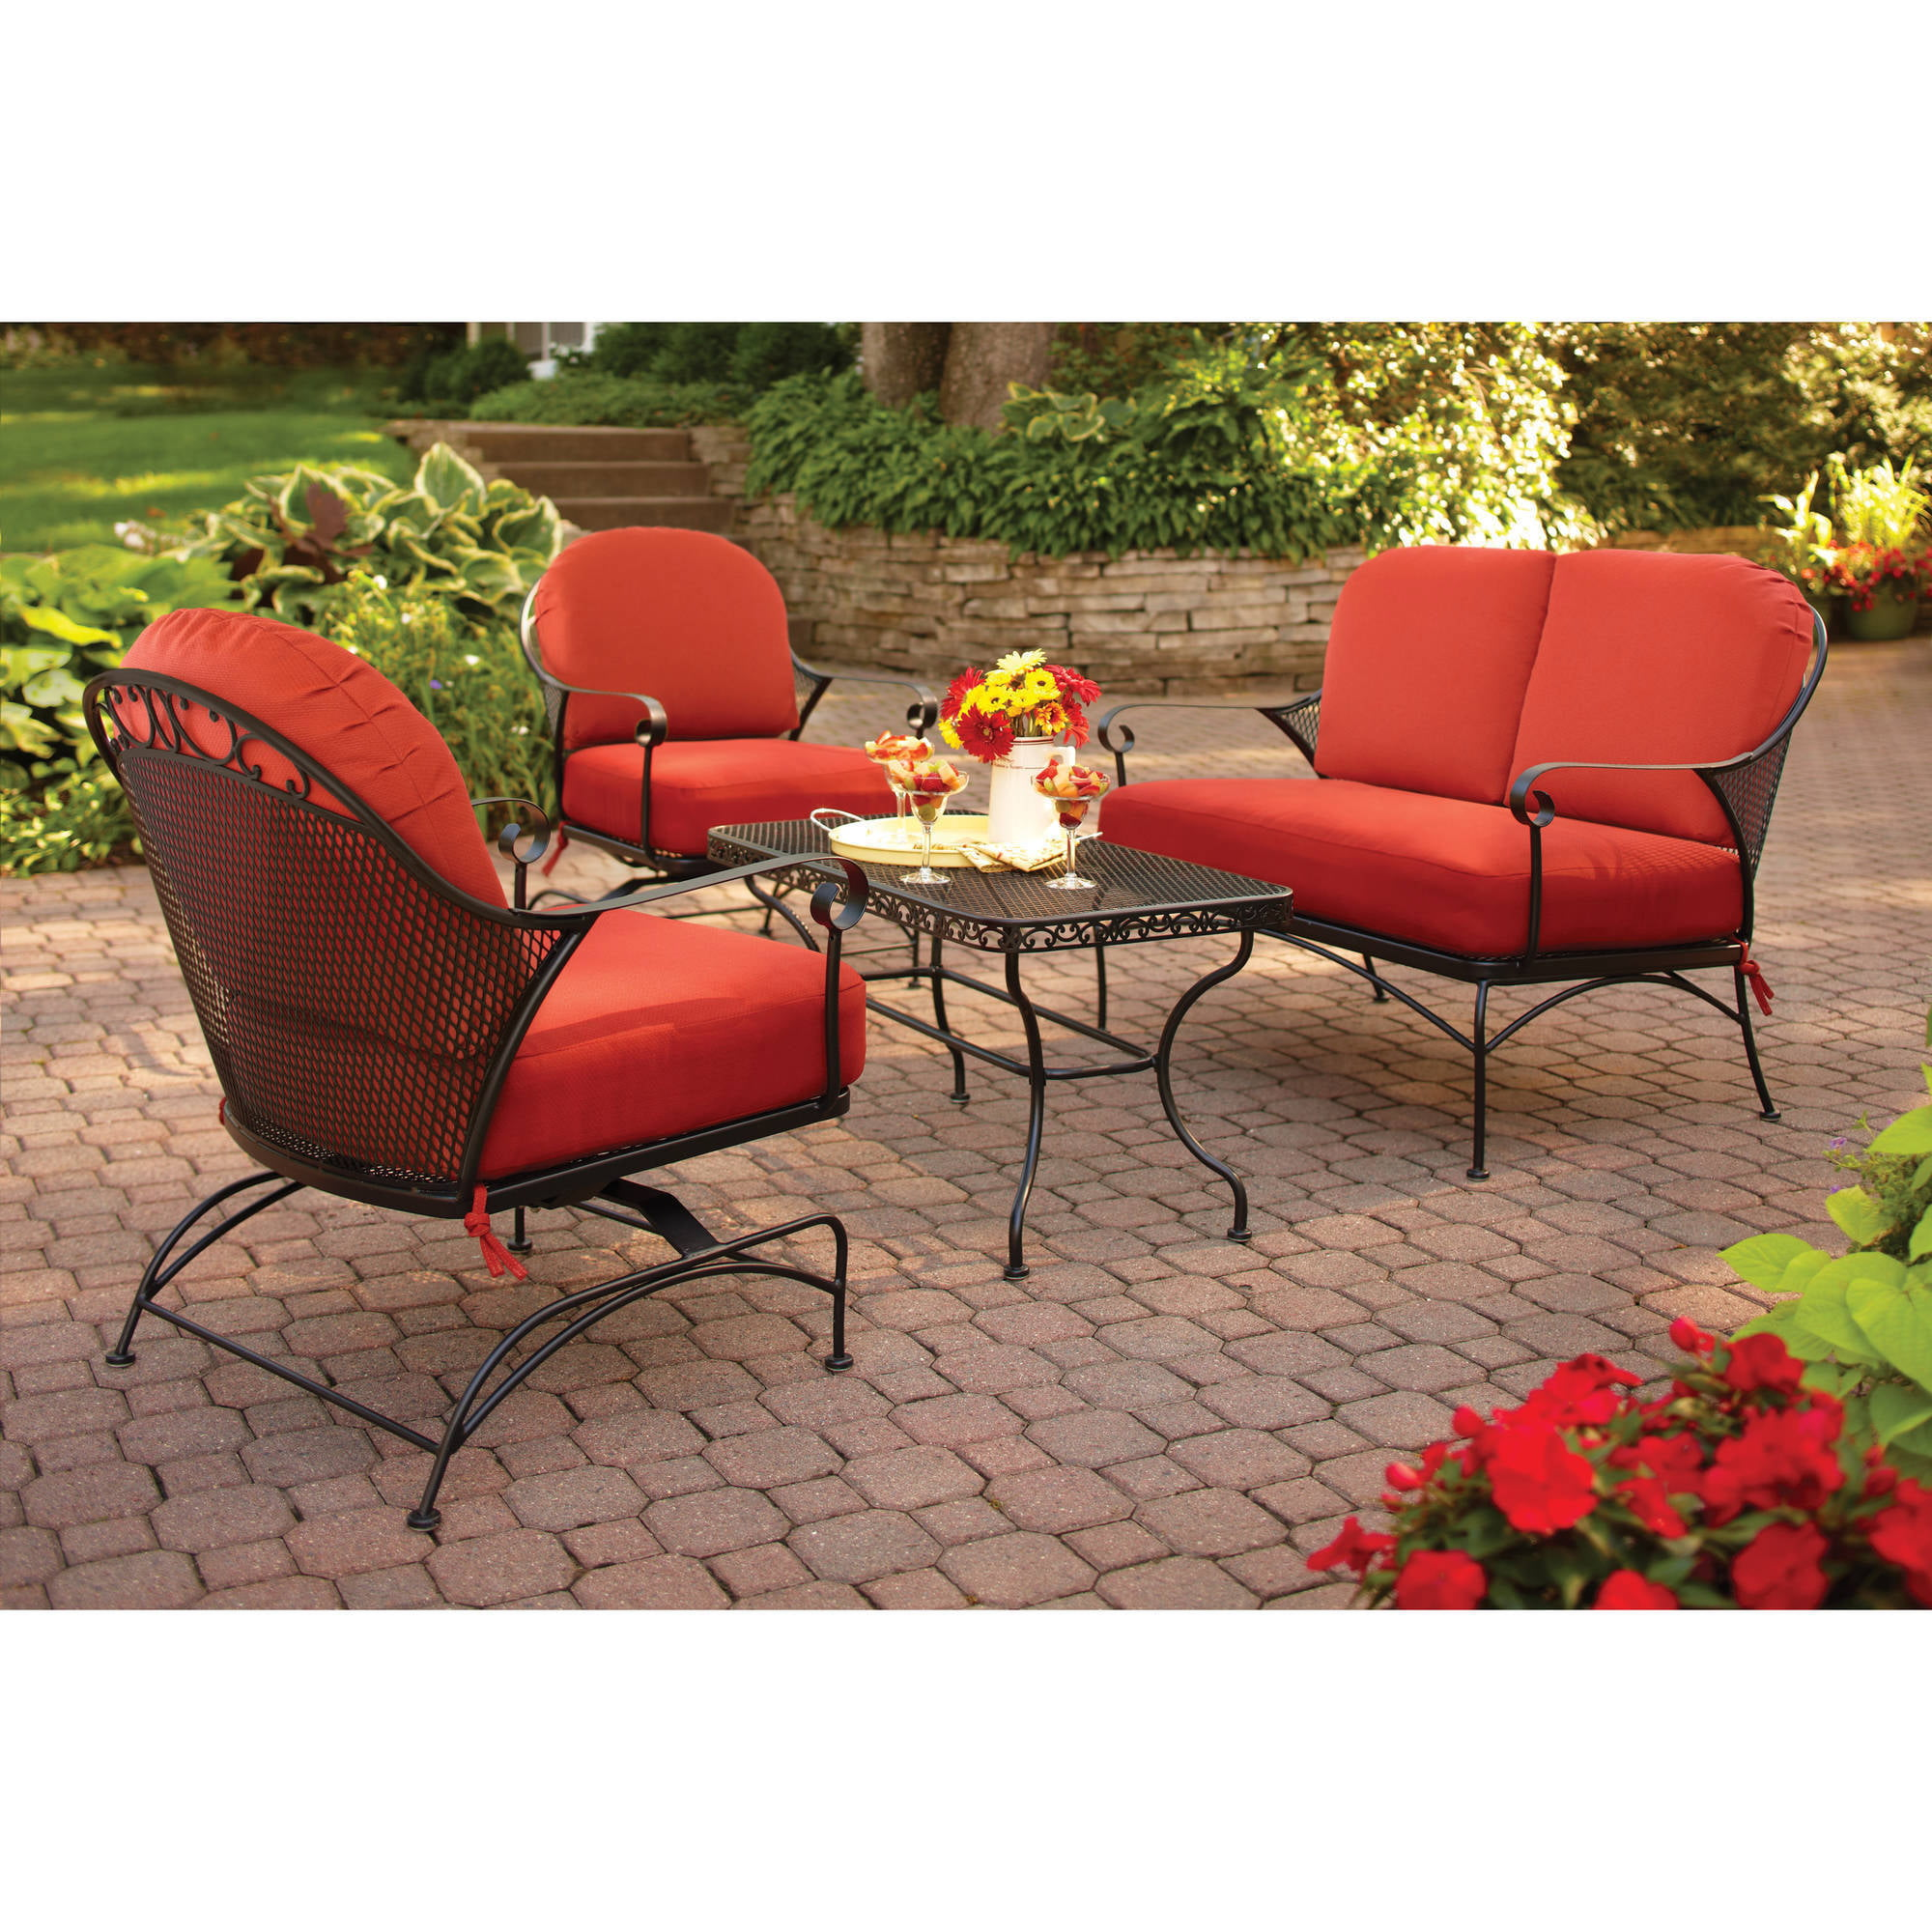 Better Homes And Gardens Clayton Court 4 Piece Patio Conversation Set,  Seats 4